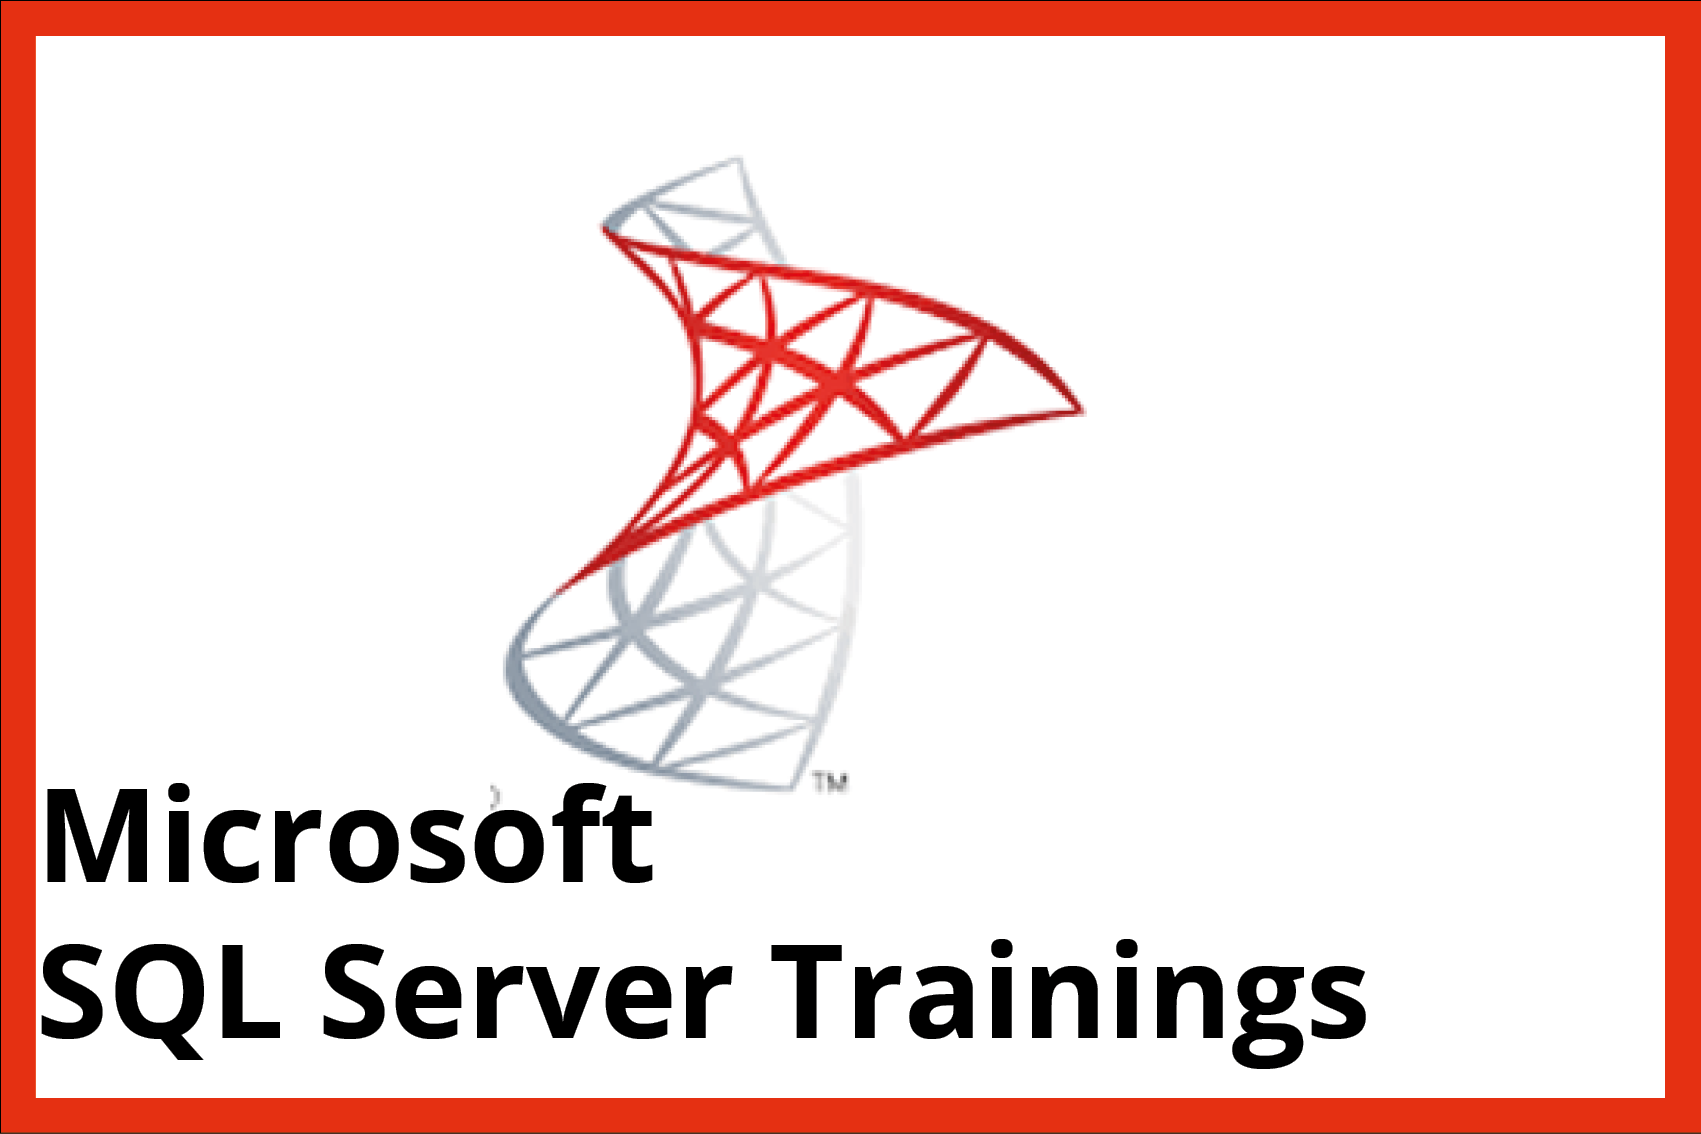 microsoft_sql_server_trainings